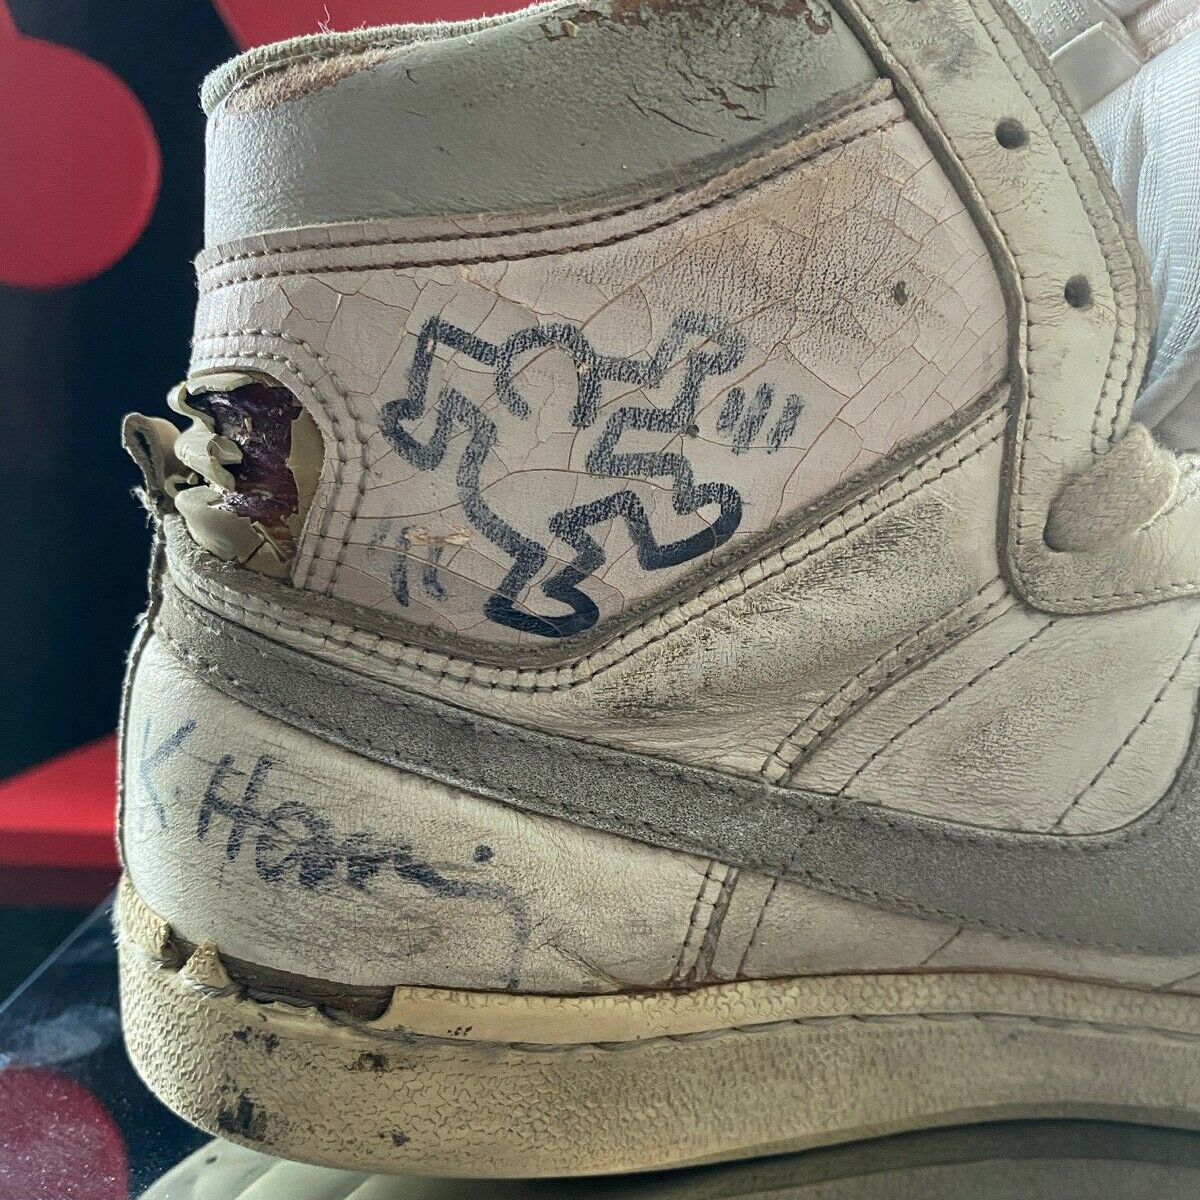 Nike Penetrators Hand-Drawn and Signed by Keith Haring From 1986